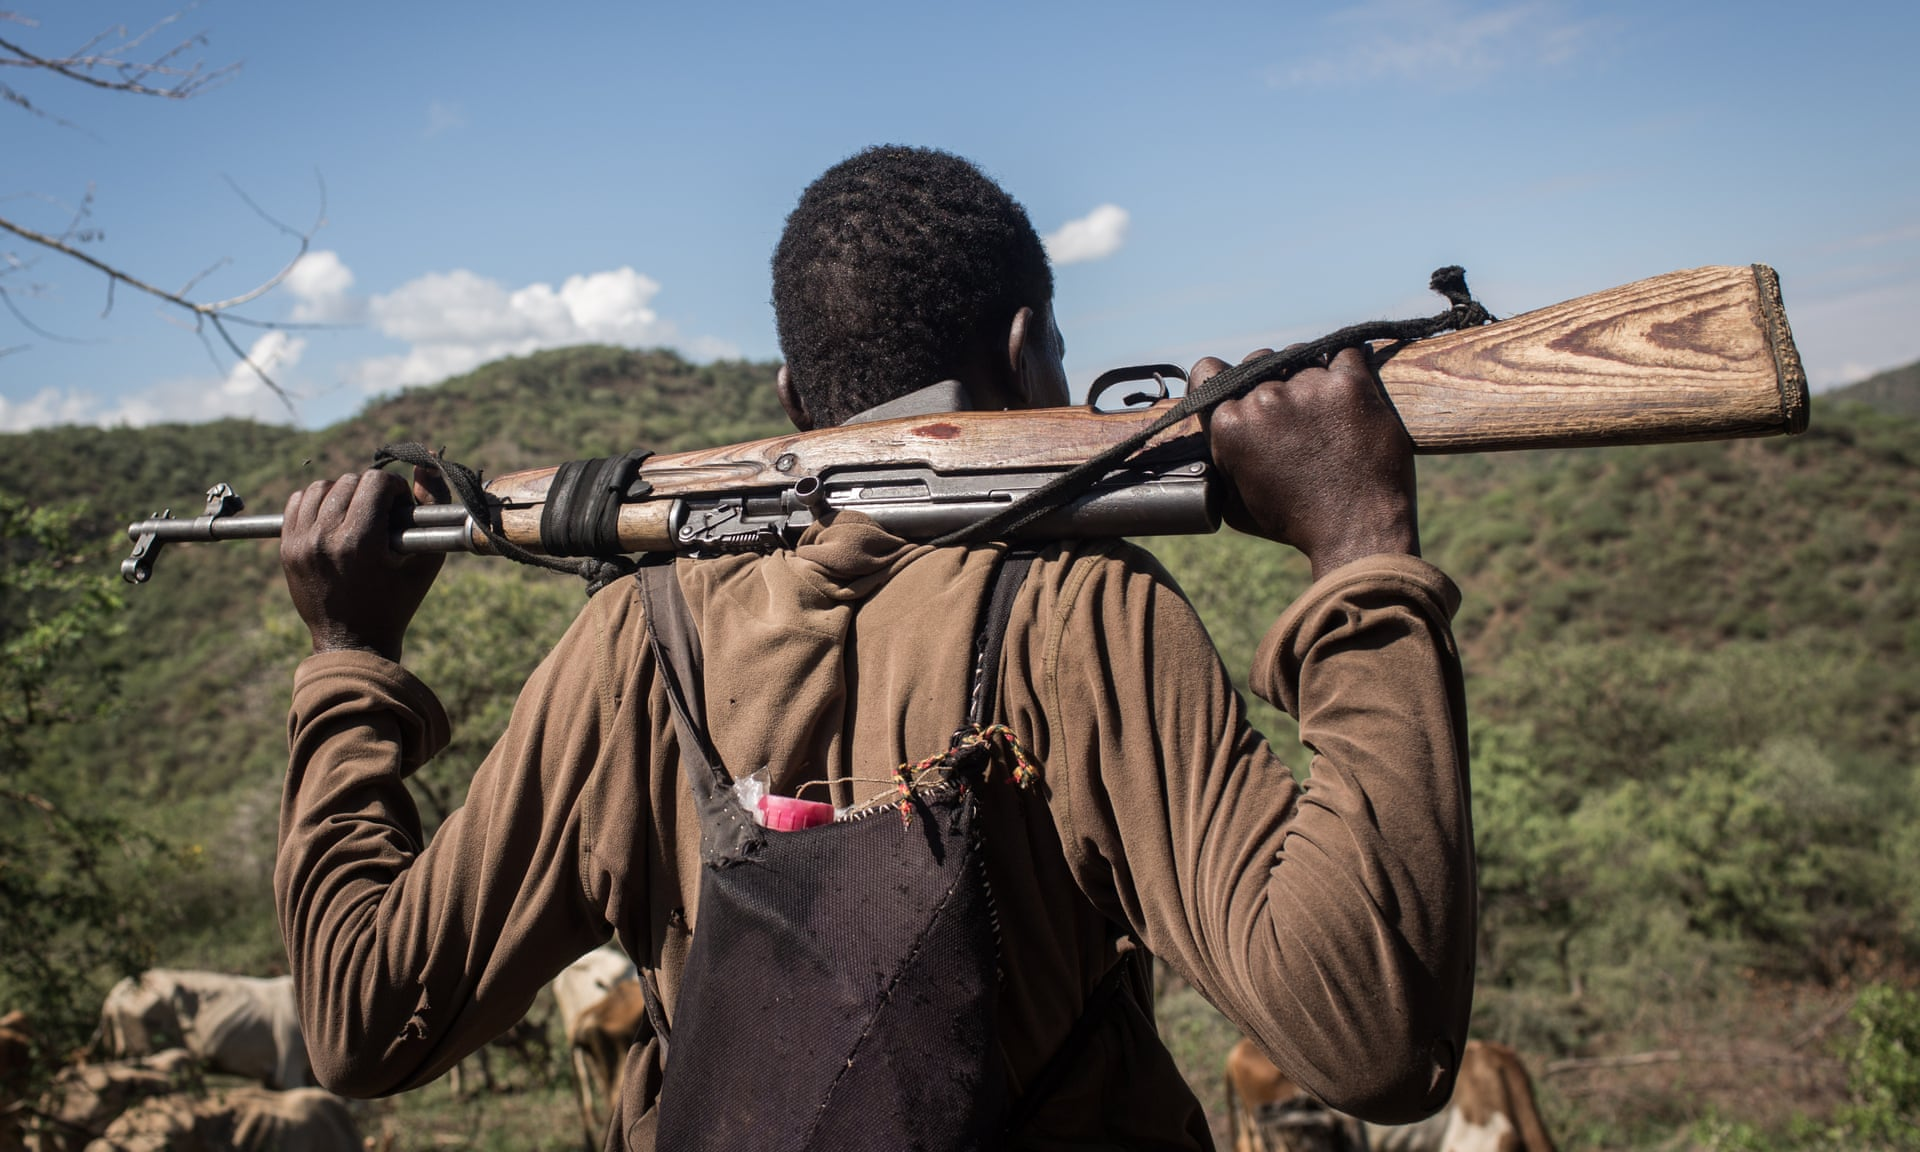 Rustlers, Bandits And Gun Runners: The Gangs Vying For Cattle In Kenya